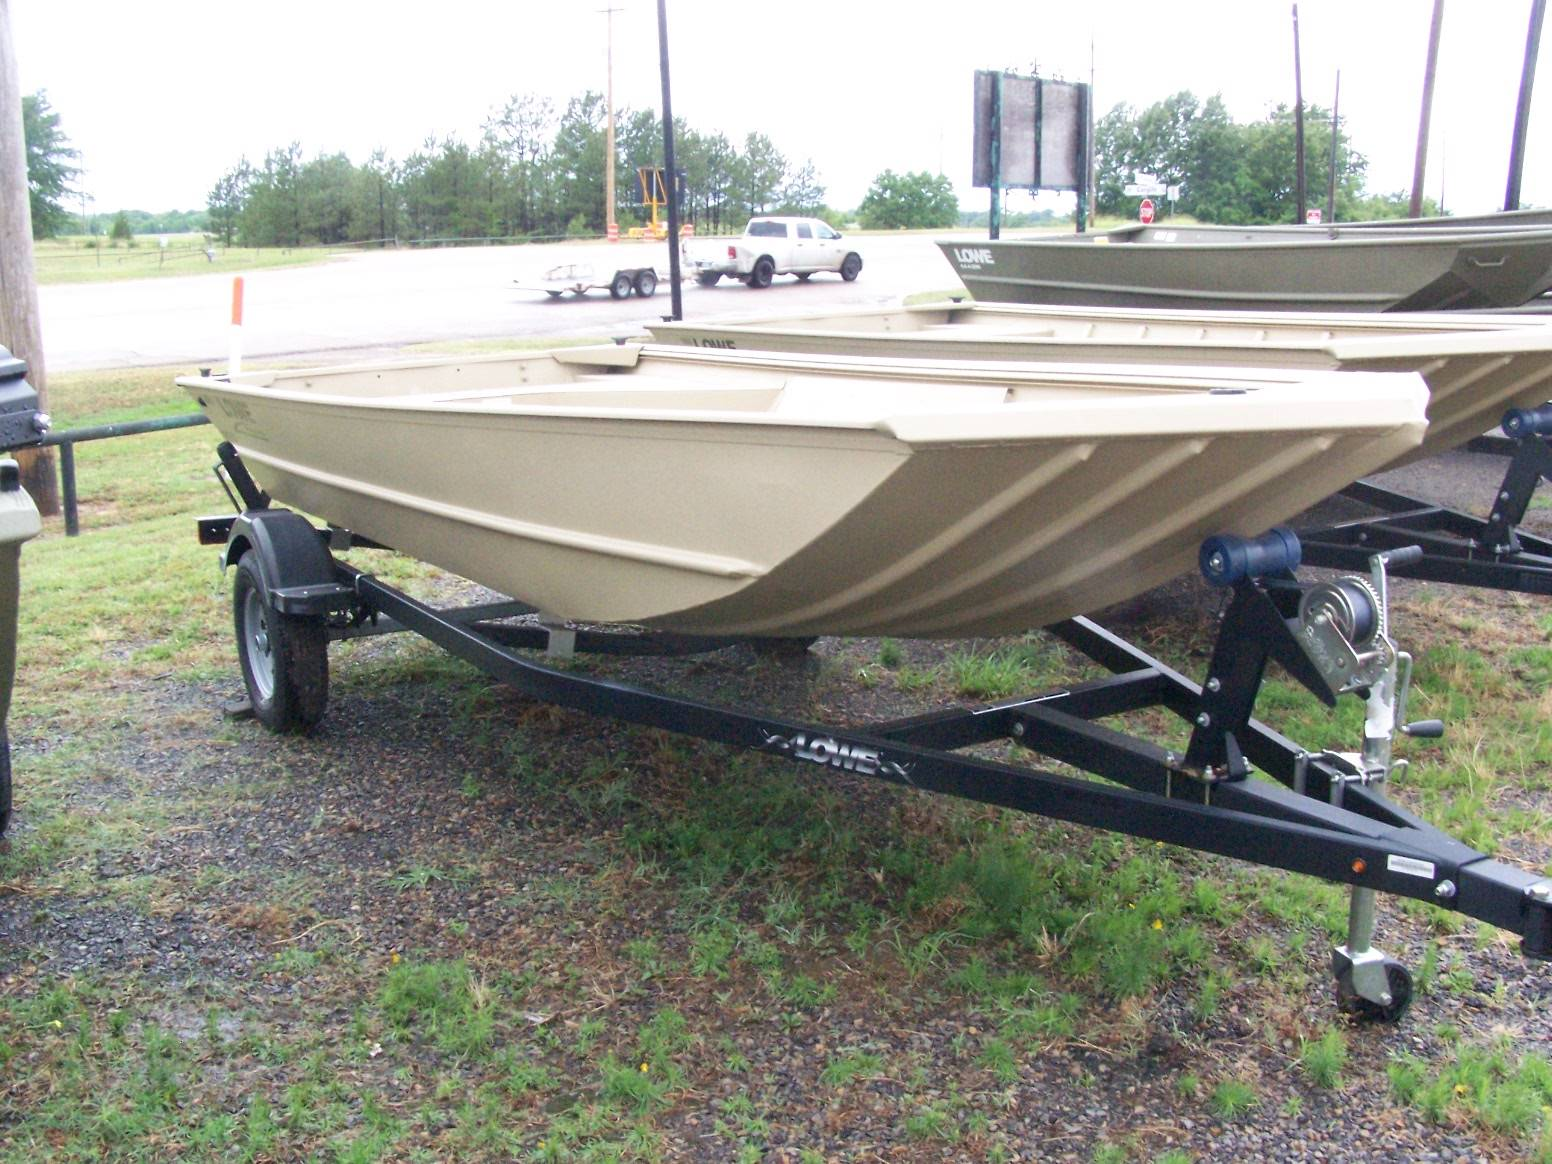 Duck Hunting Boats For Sale >> Lowe Duck Hunting Boats Roughneck 1650 Boats For Sale Boats Com